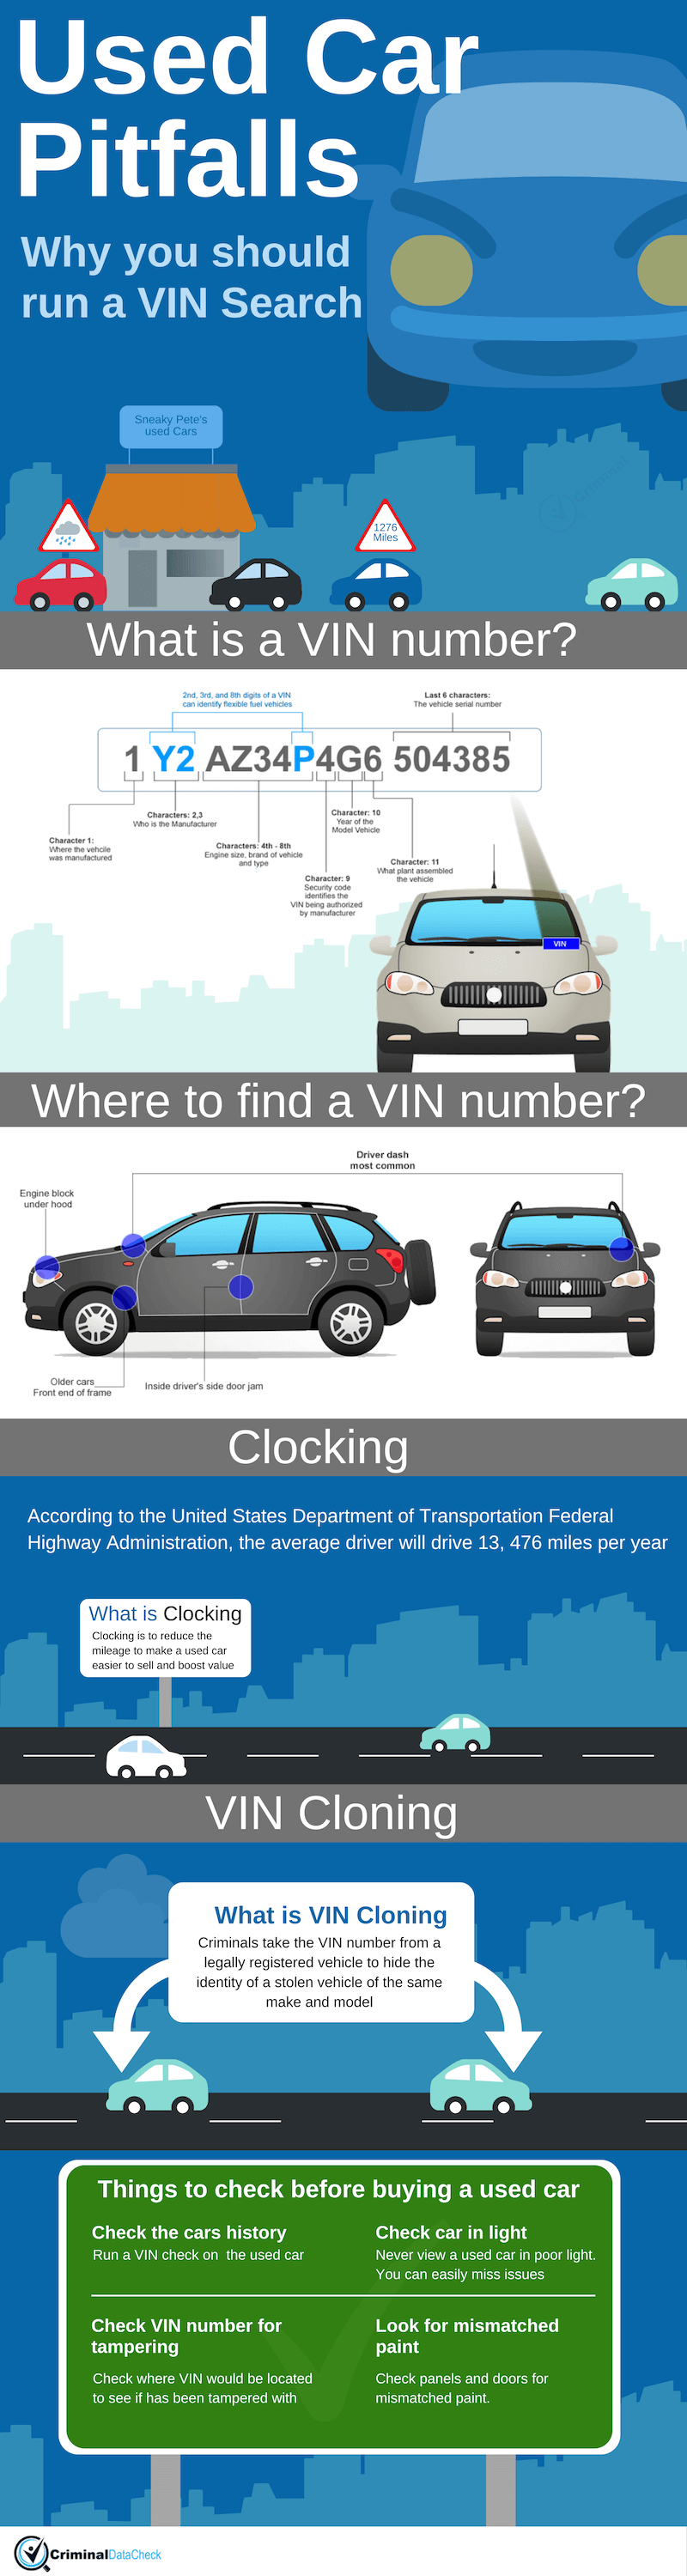 tips for buying a used car Infographic